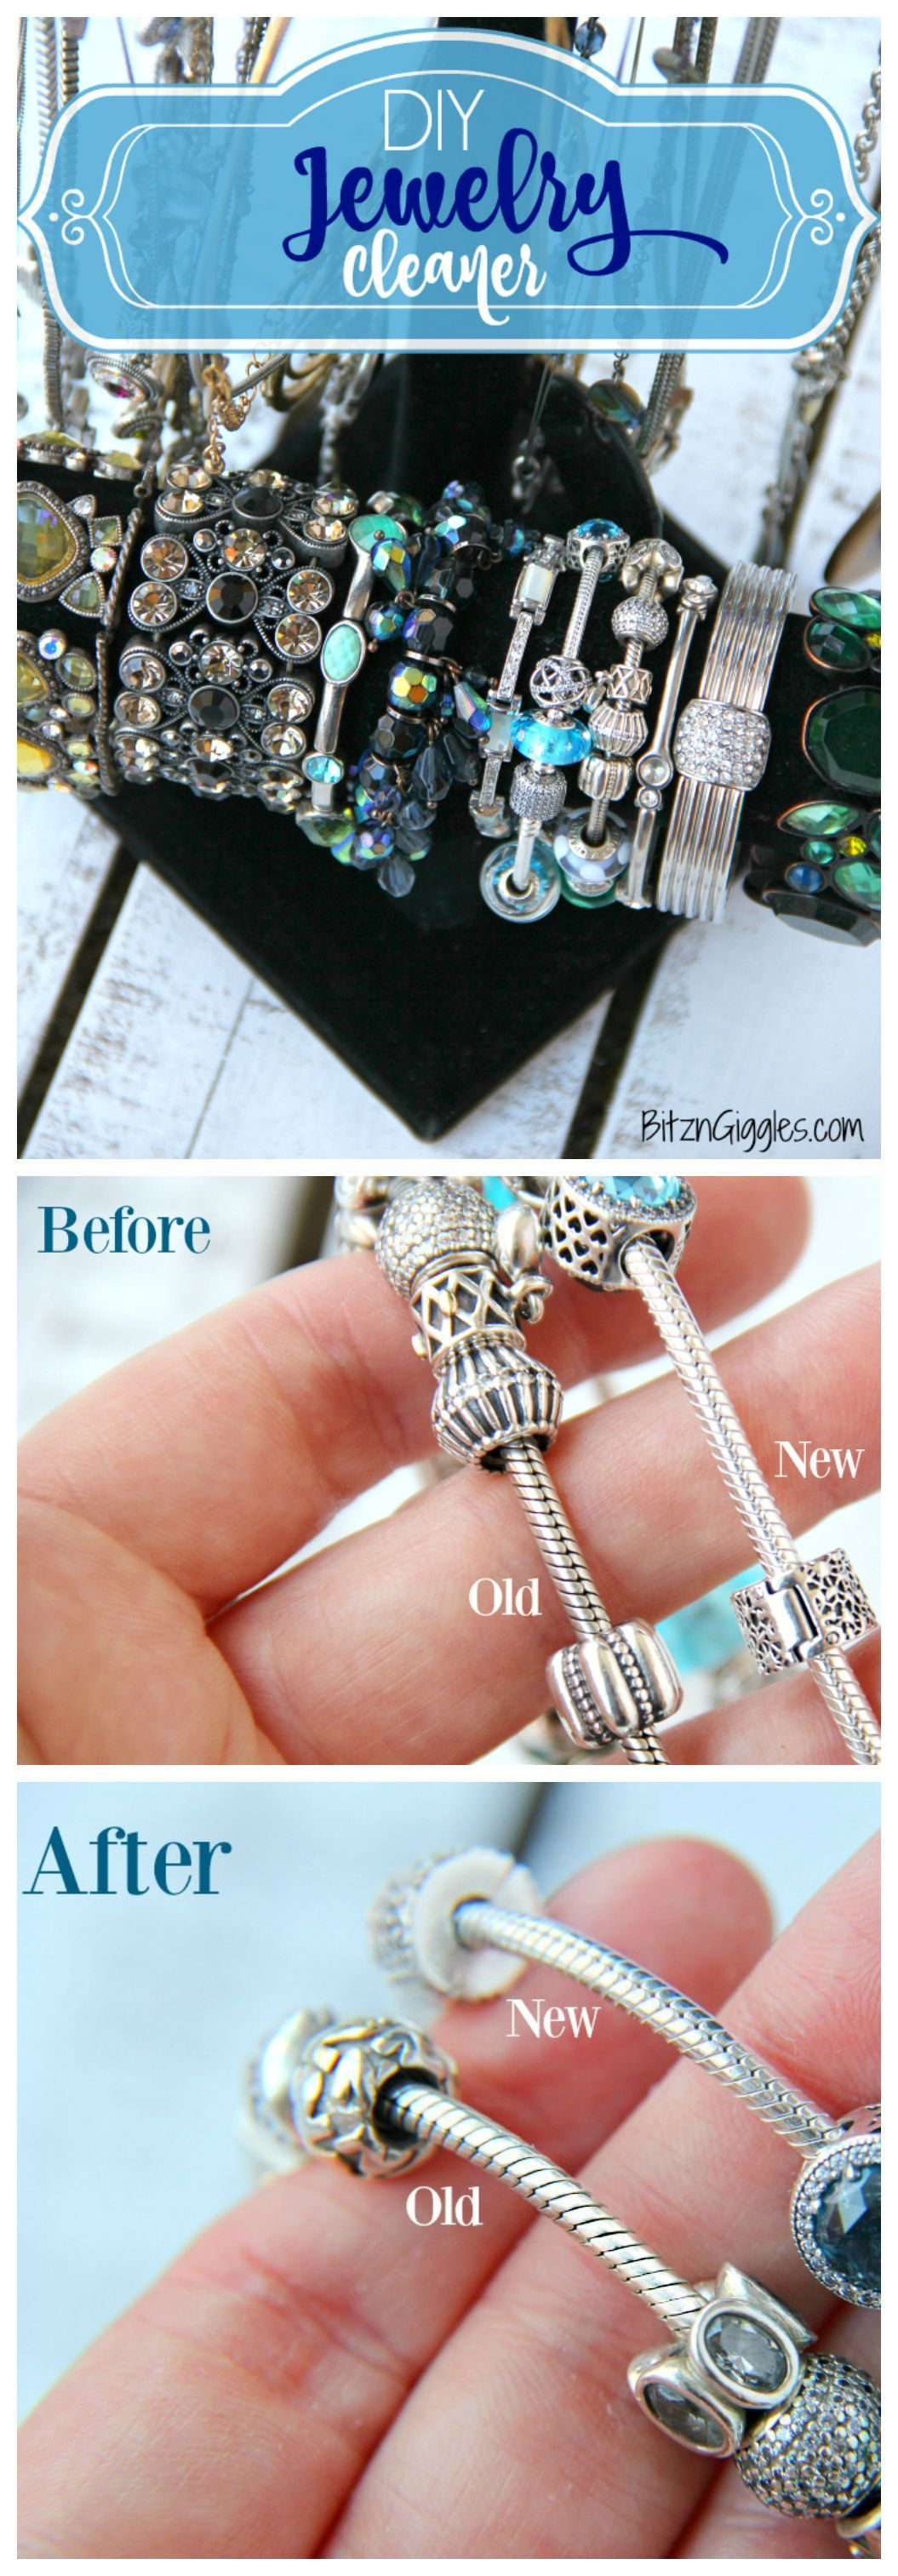 DIY Jewelry Cleaner - Homemade 4 ingredient jewelry cleaner that will remove years of tarnish and make your jewelry sparkle like new! Jewelry Cleaner - Homemade 4 ingredient jewelry cleaner that will remove years of tarnish and make your jewelry sparkle like new!